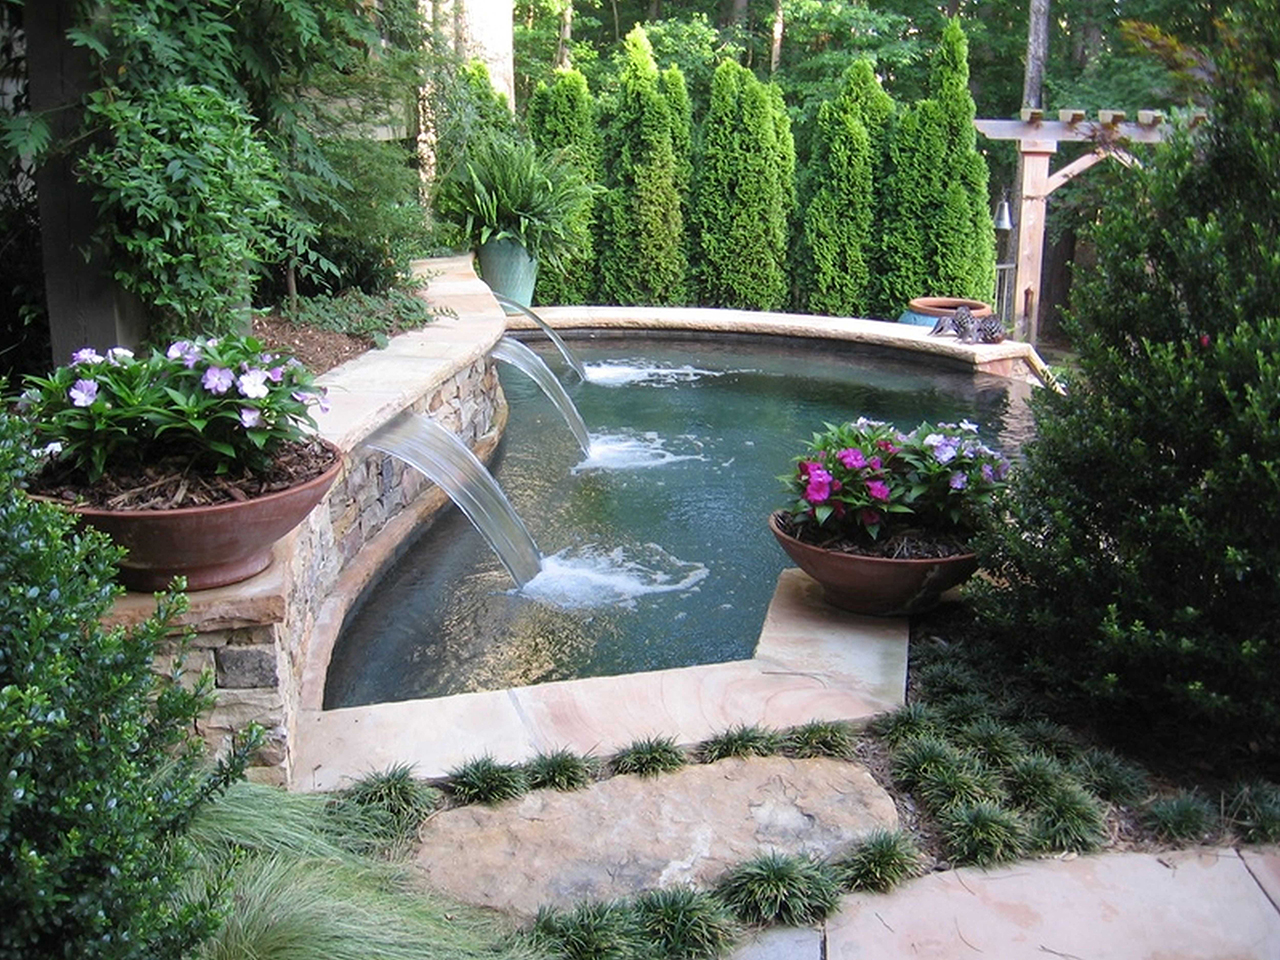 50 Best Backyard Landscaping Ideas and Designs in 2020 on Best Backyard Landscaping id=48005